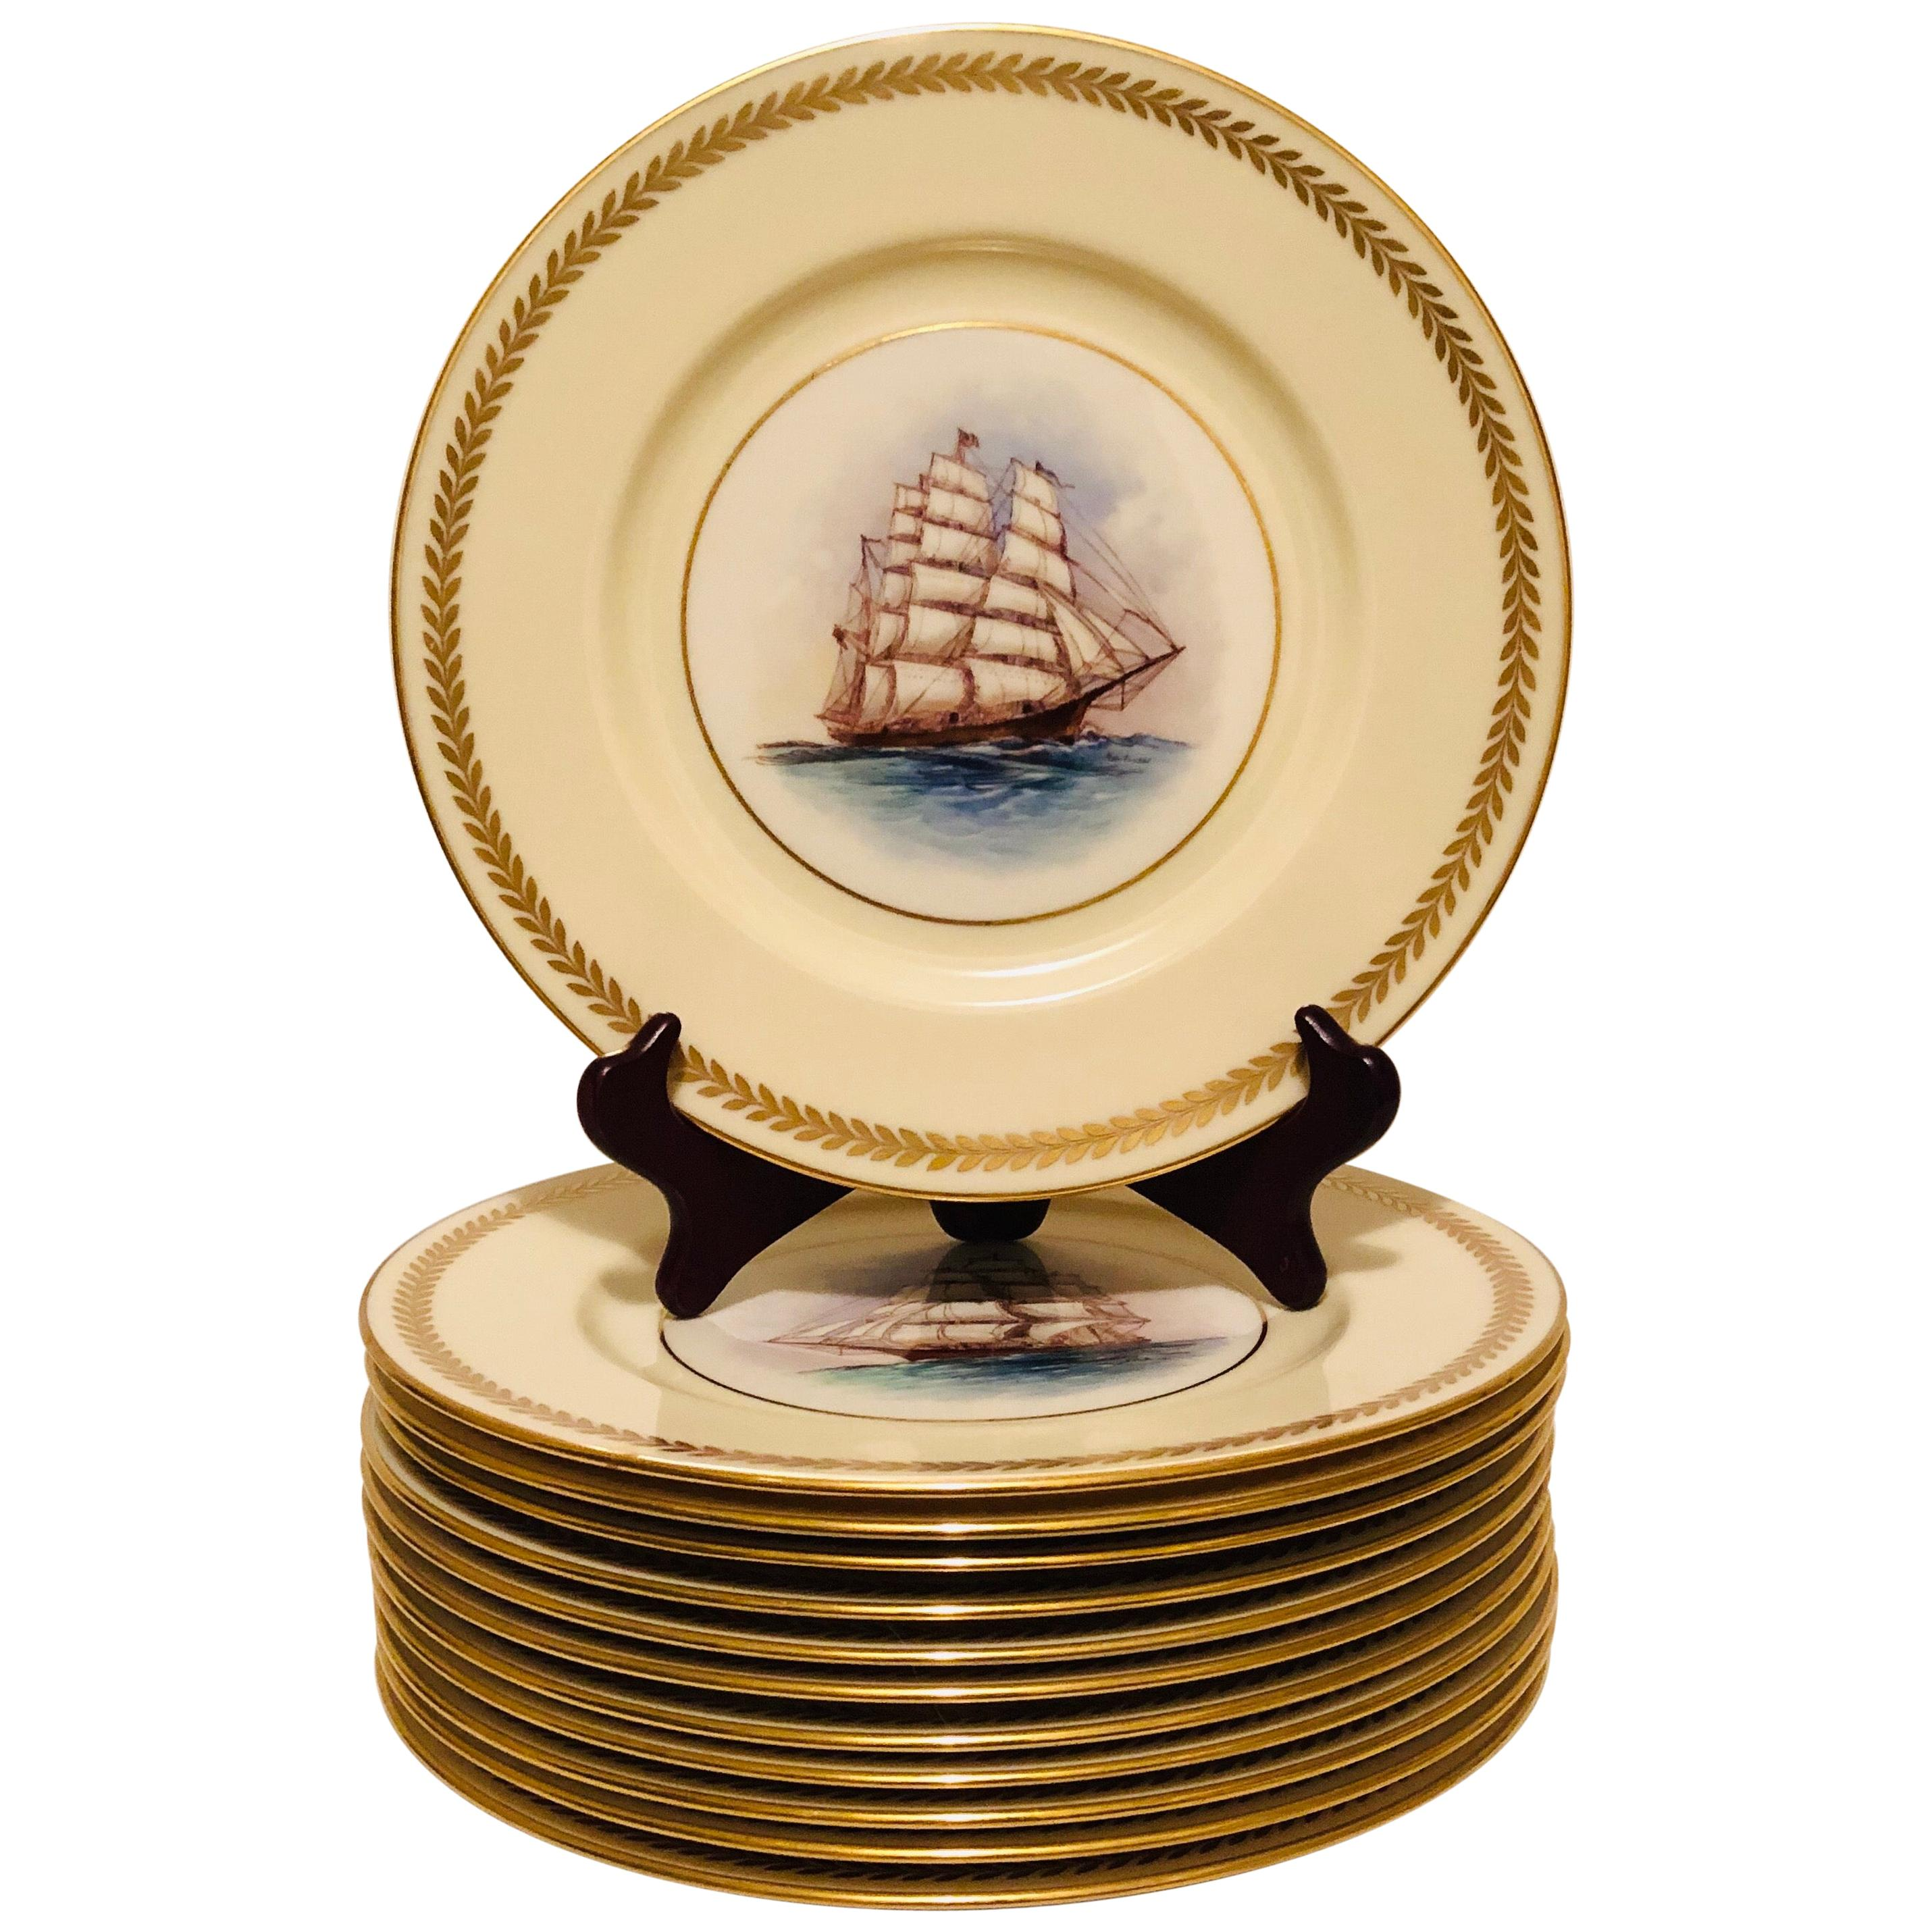 Set of Twelve Lenox Plates Each Hand Painted with a Different Tall Ship